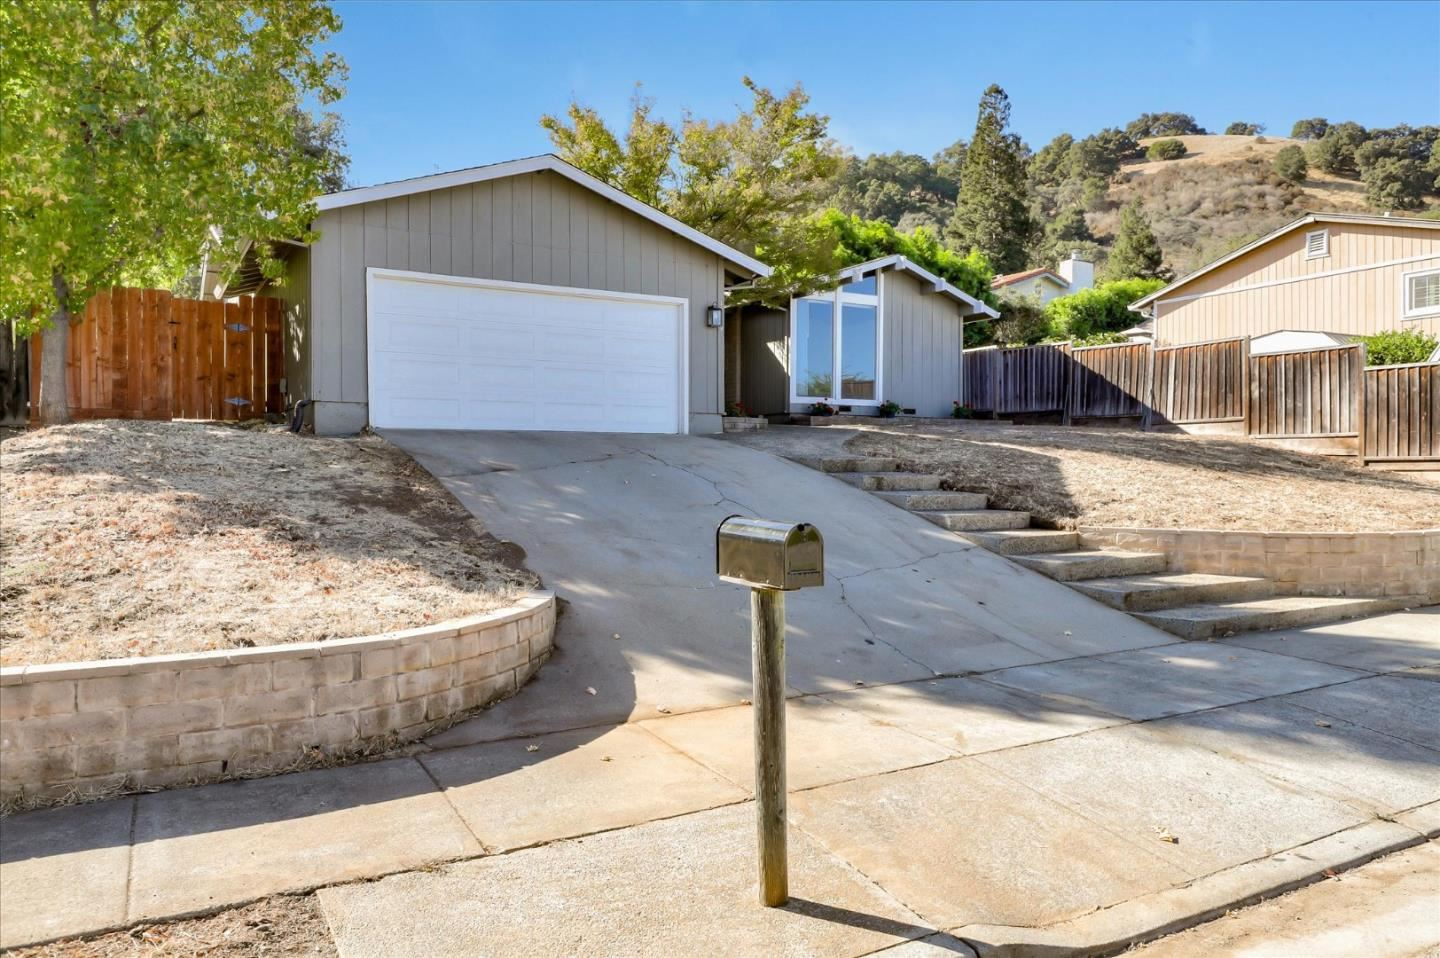 Photo for 17715 Florence, MORGAN HILL, CA 95037 (MLS # ML81819596)